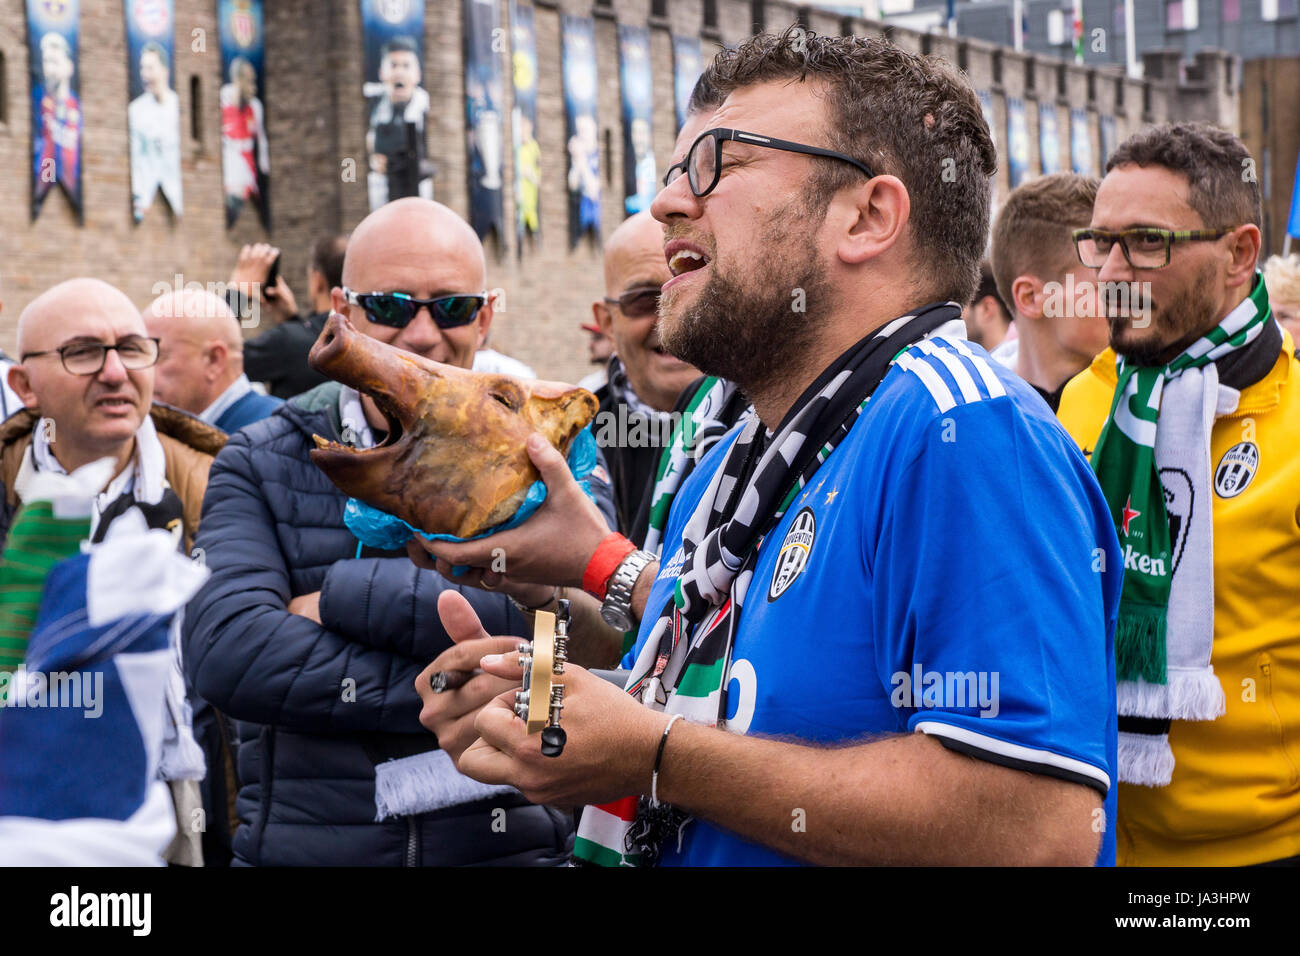 Pigs head and musician, Cardiff centre, Champions League Final 2017 - Stock Image